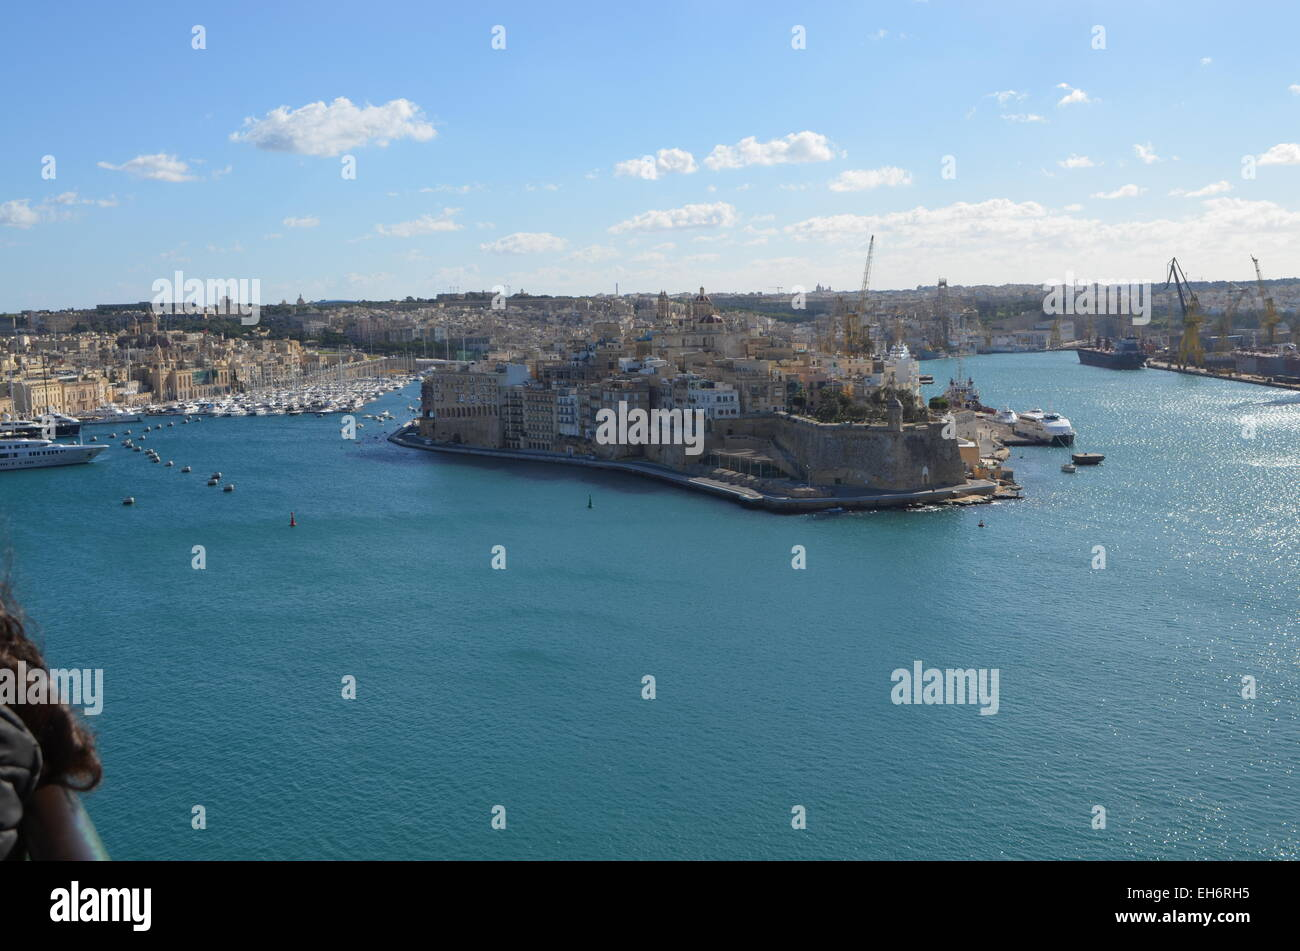 Malta, Valletta, a view of The Grand Harbour with Fort St. Angelo to the right,and hundreds of sailing boats in - Stock Image